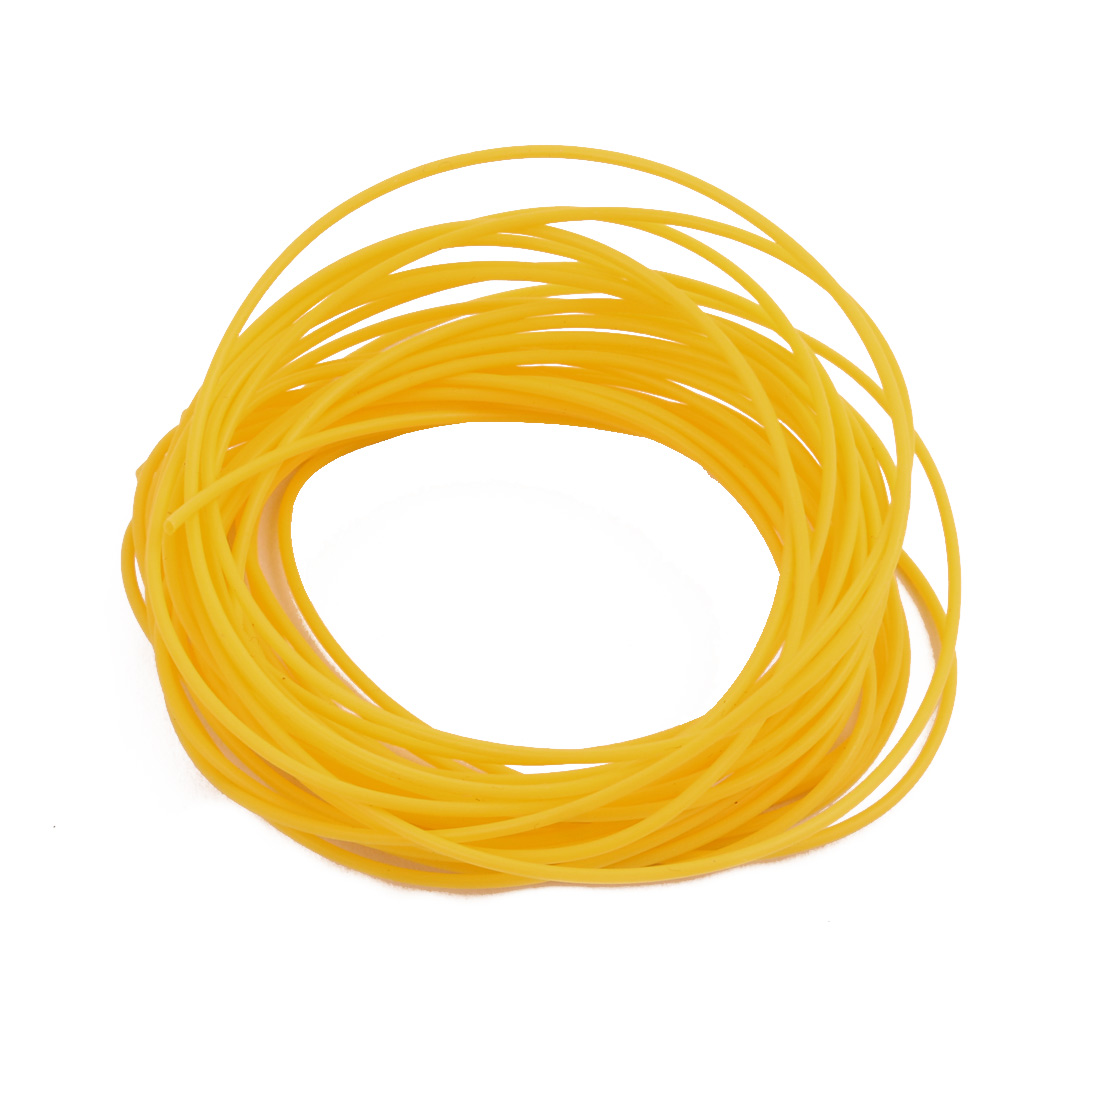 0.71mmx1.01mm PTFE Resistant High Temperature Yellow Tubing 10 Meters 32.8Ft